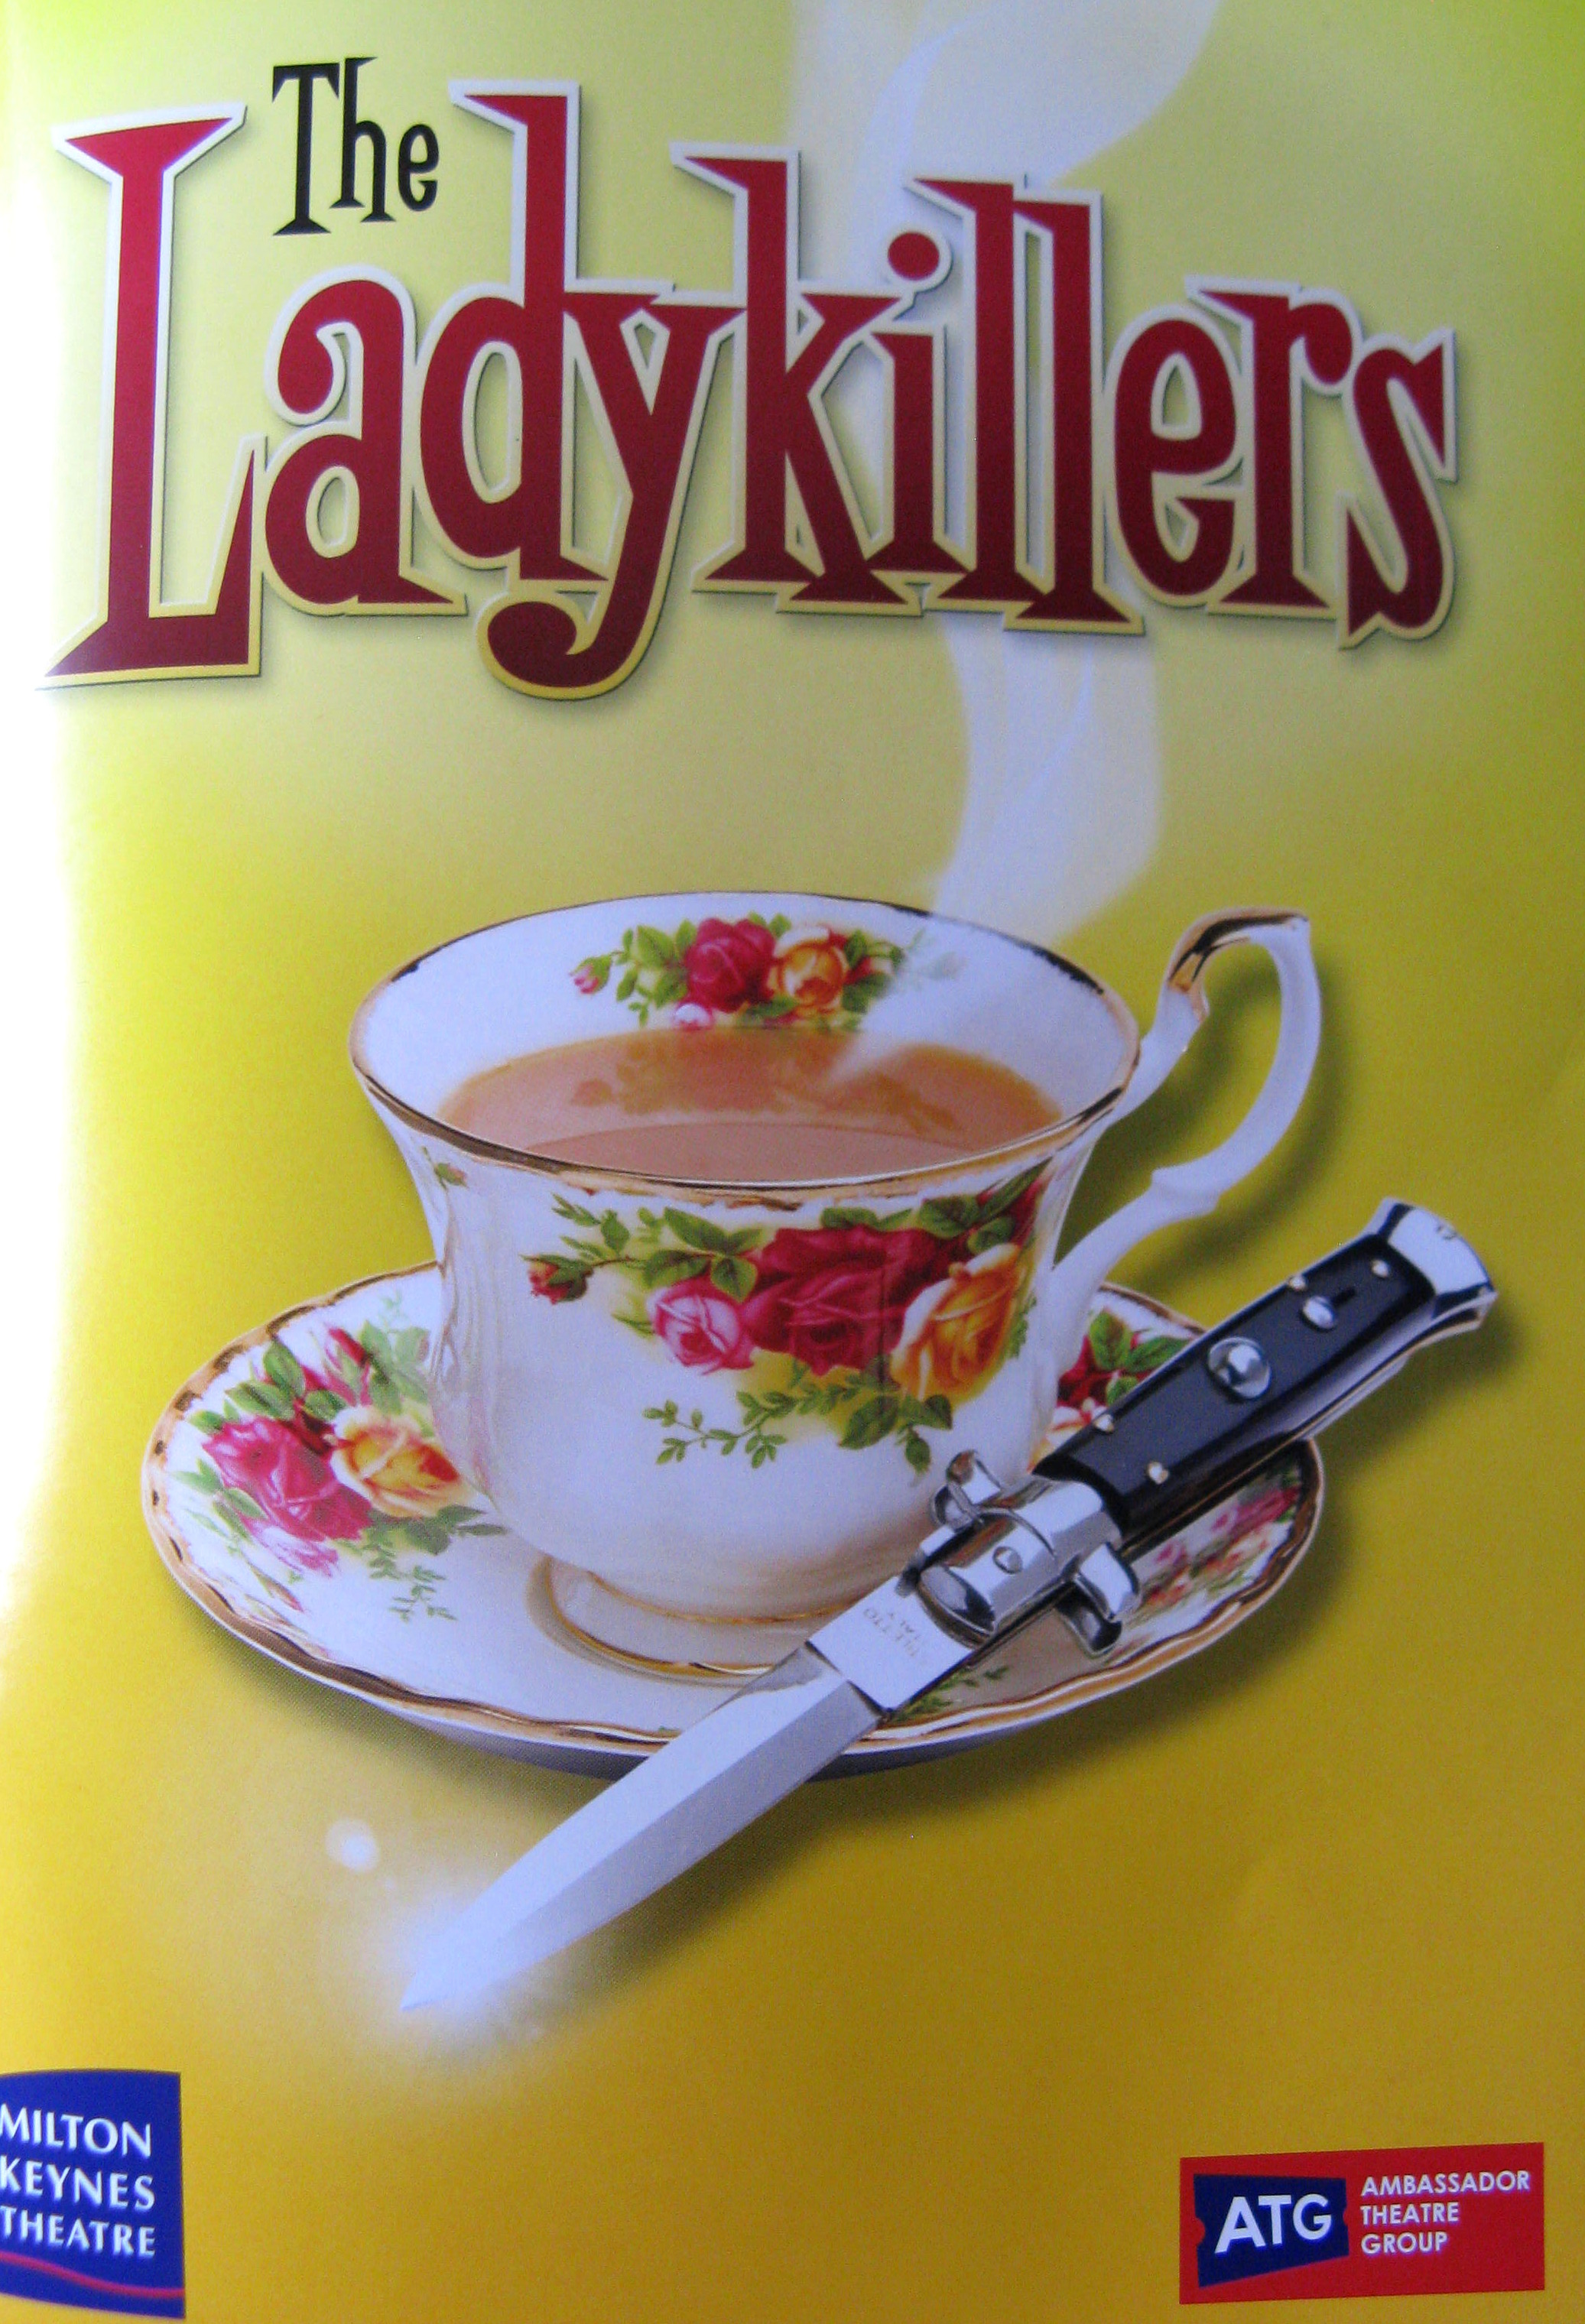 the ladykillers review Ladykillers by lush ladykillers by lush 3:14 album only 37 30 great  write a customer review most recent customer reviews lydiab 50 out of 5 stars oldschool.